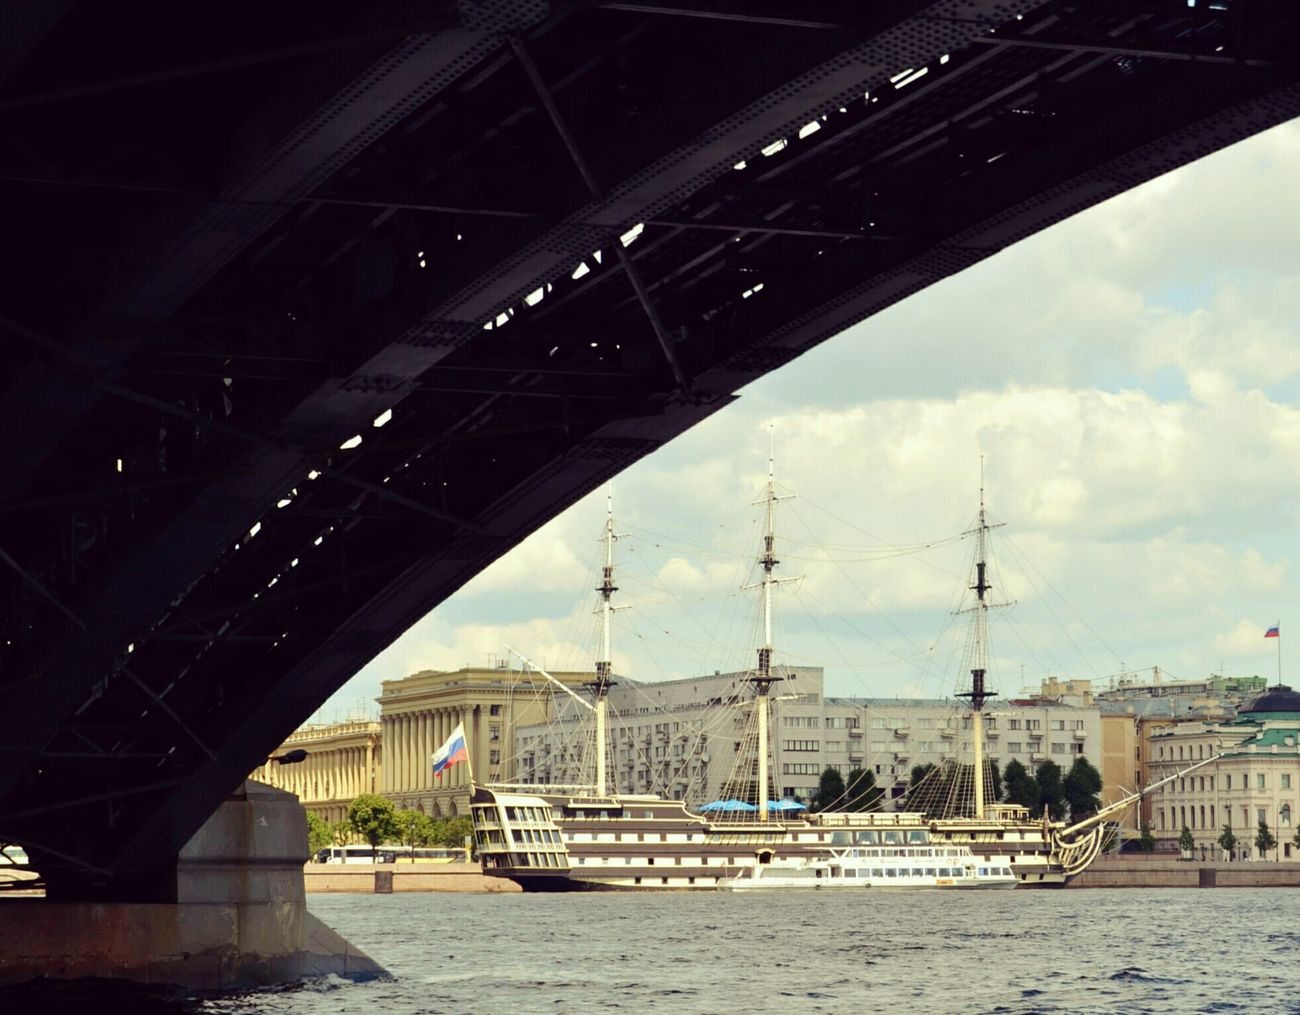 Bridge Under The Bridge Spb Saint Petersburg Russia FromRussiaWithLove Goodlife Taking Photos Check This Out Relaxing Enjoying Life Питер Arch Bridge OnTheWater Russia, St.Petersburg Russian Beauty